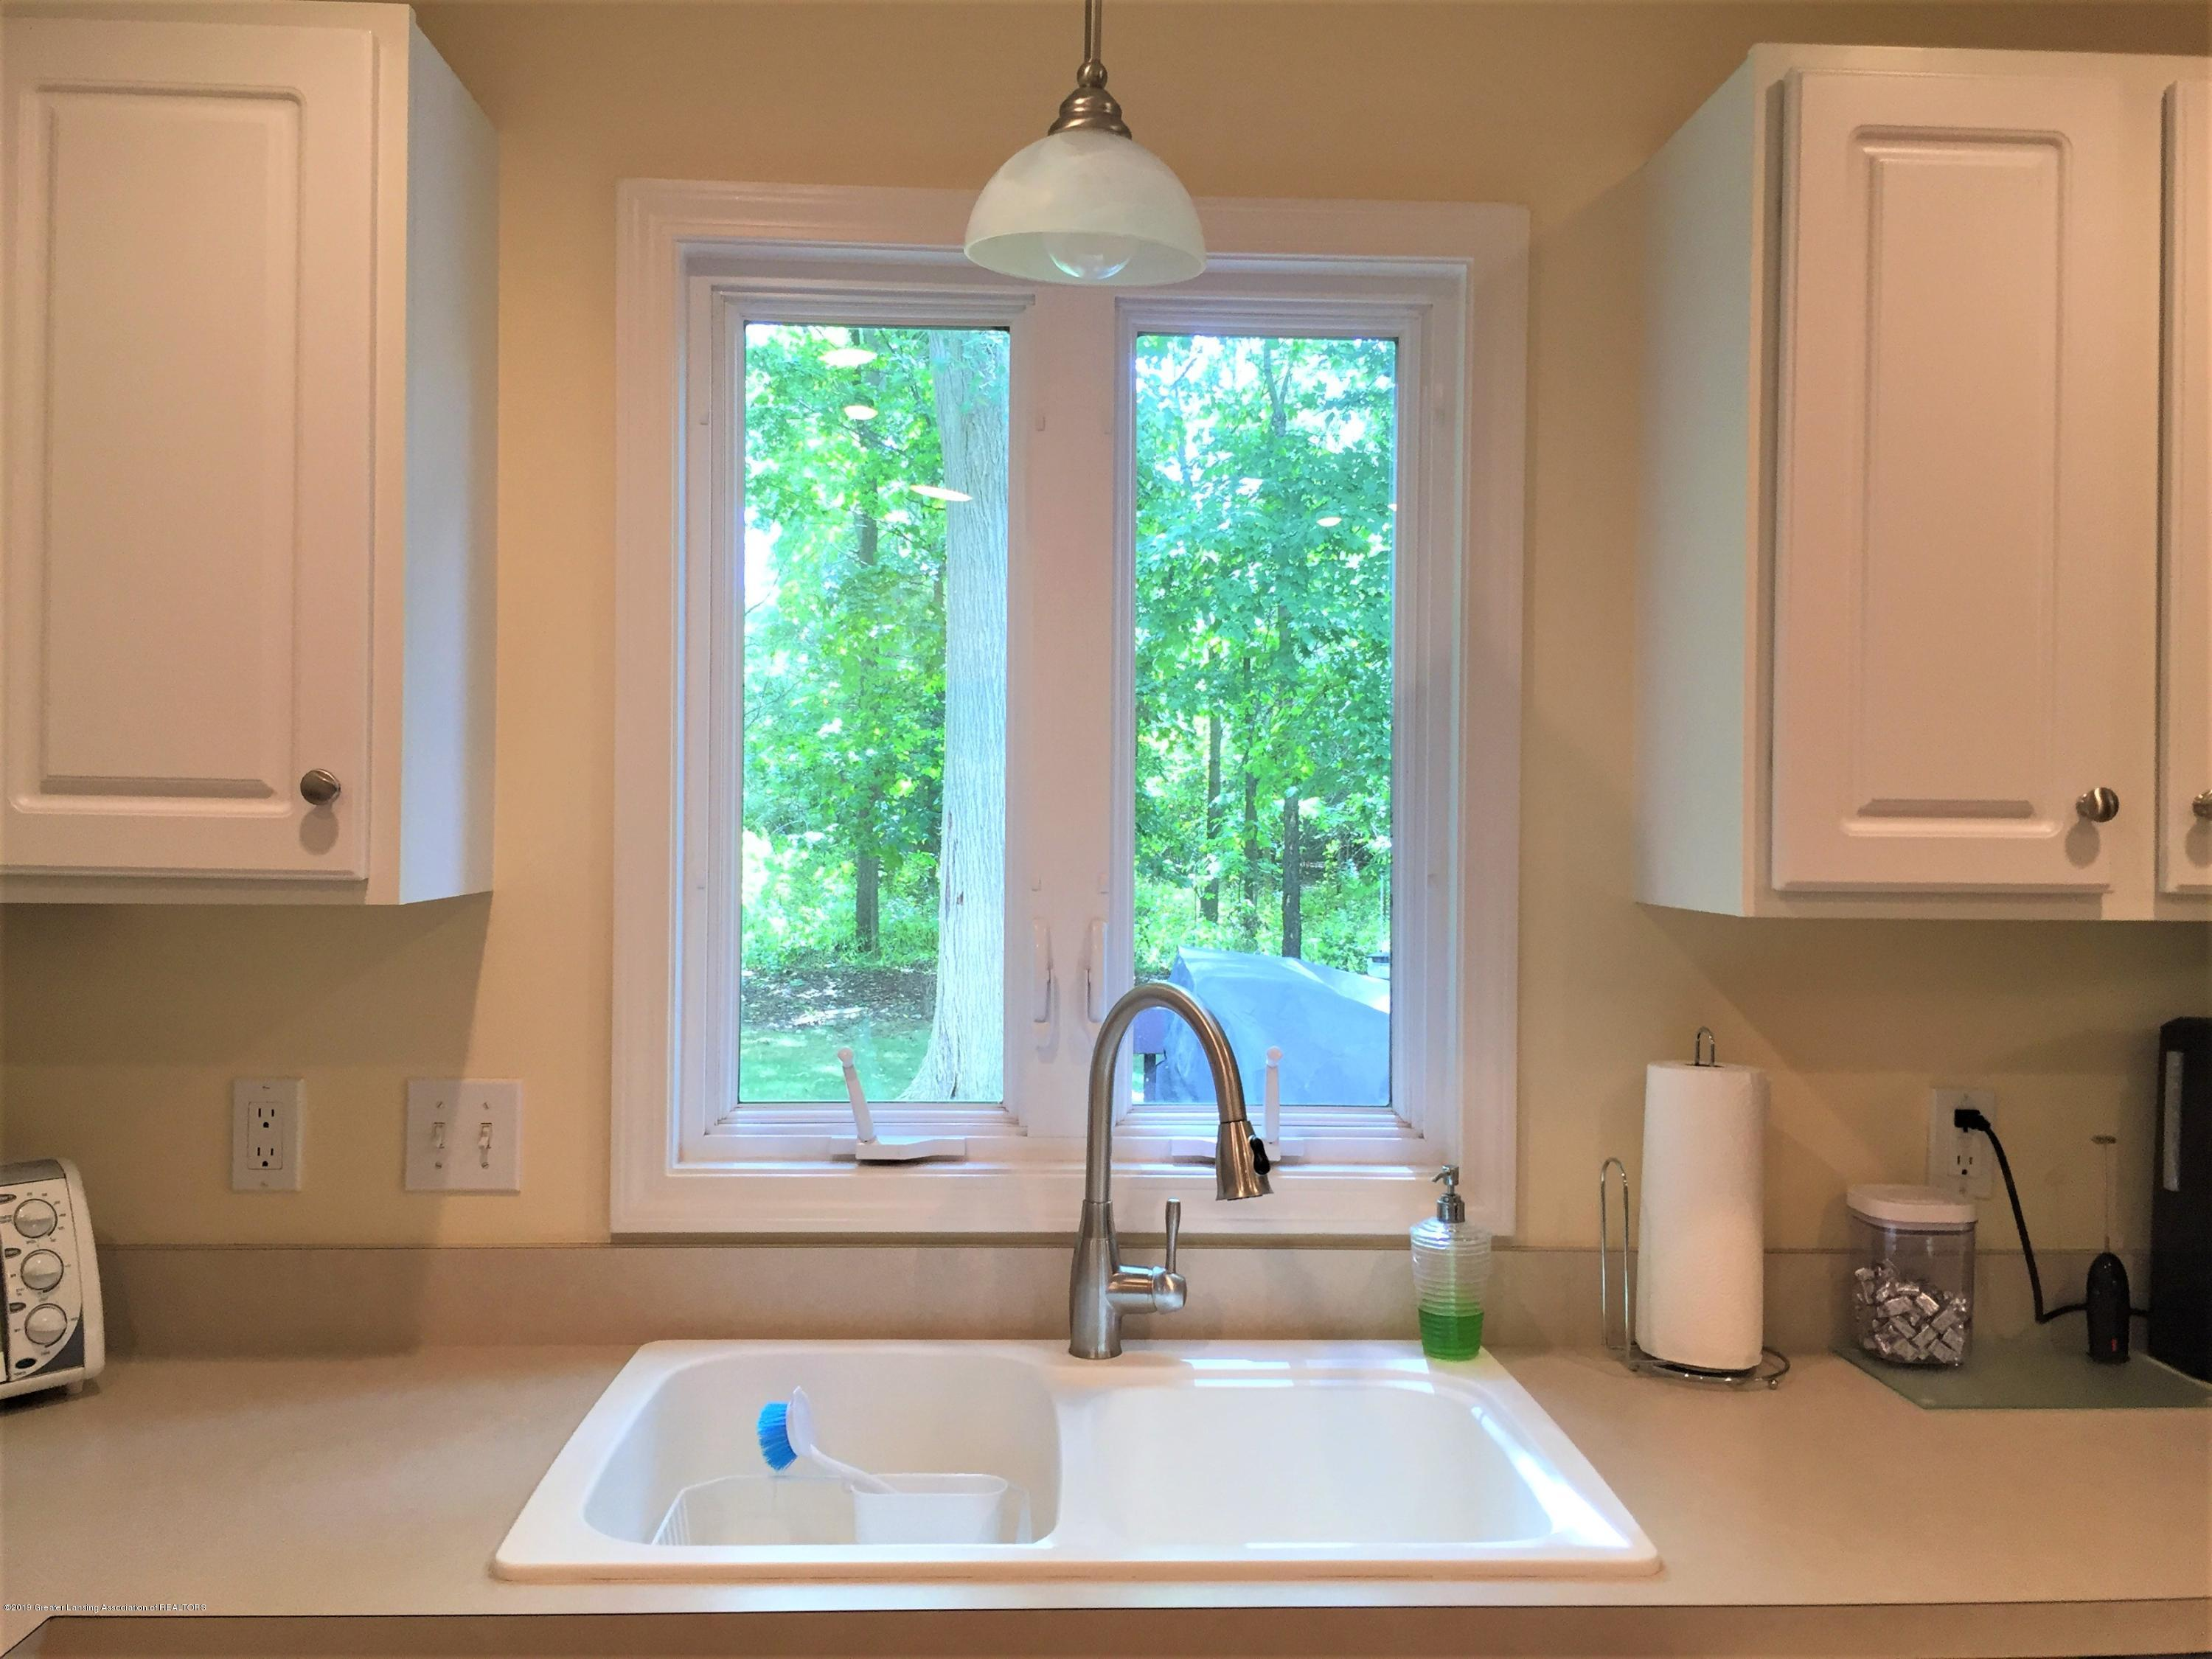 8617 Wheatdale Dr - Kitchen Sink/View of Wooded Lot - 9